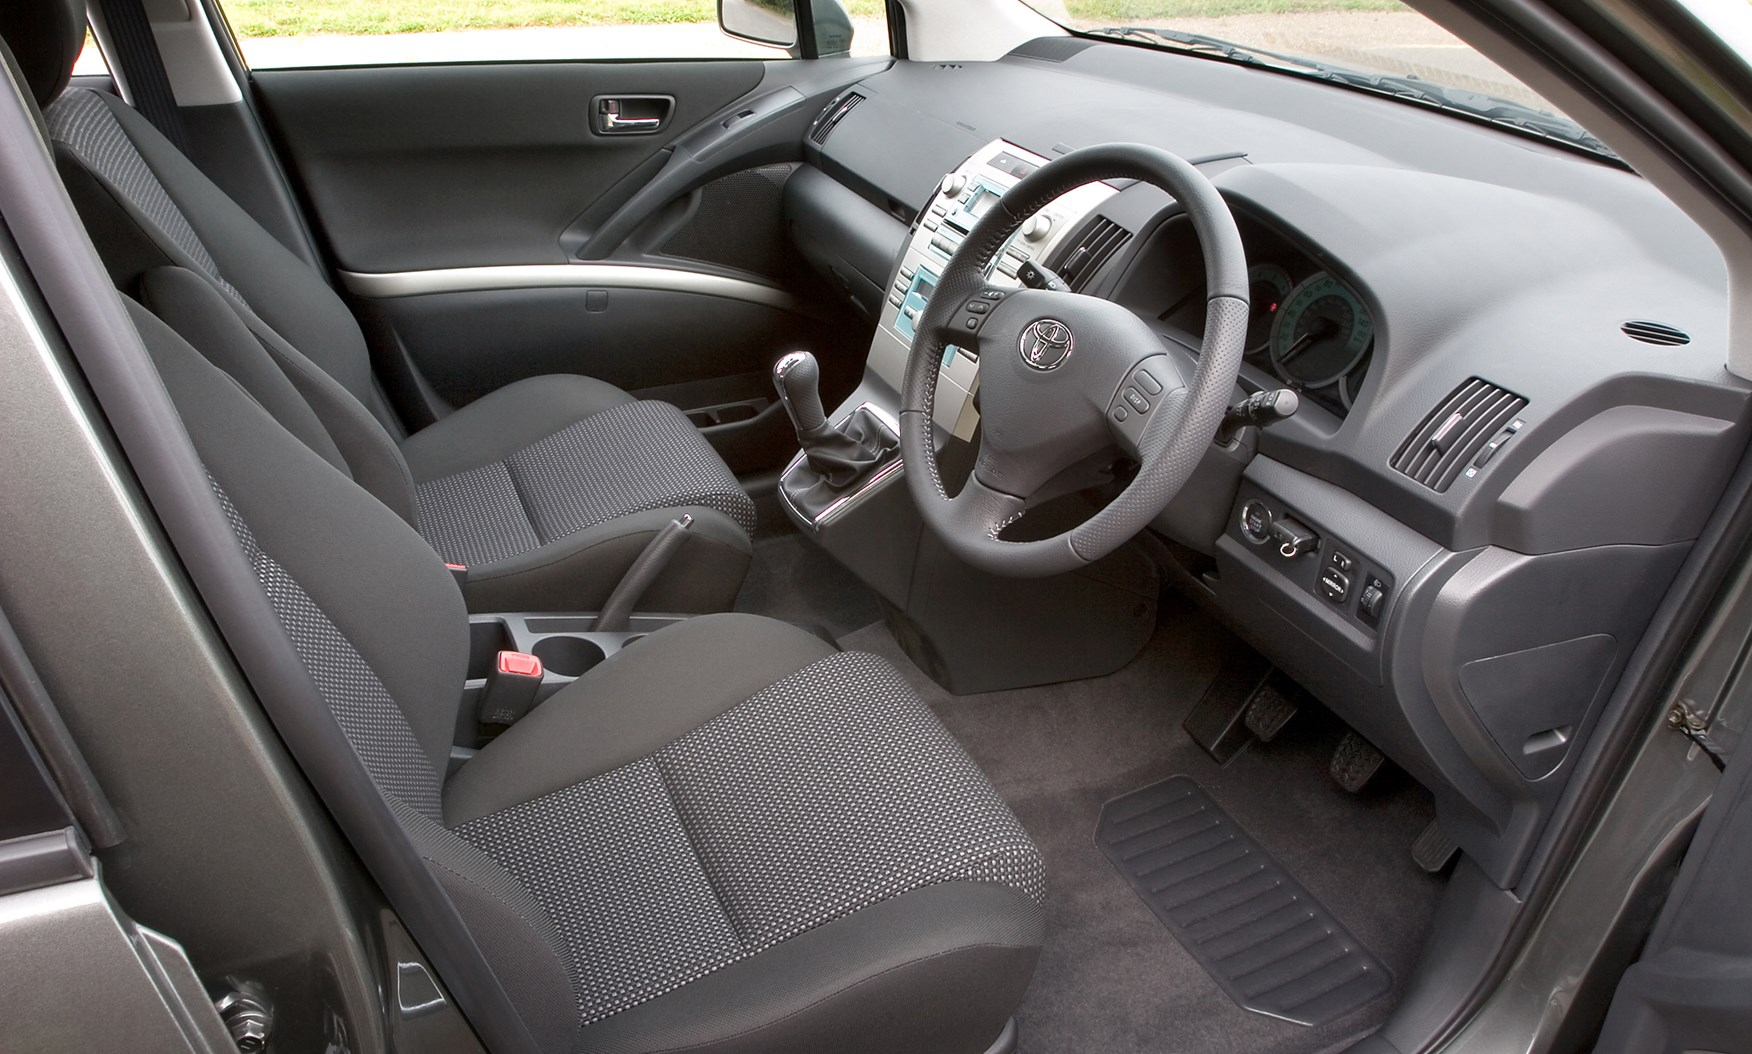 Used Toyota Corolla Verso (2004 - 2009) Review | Parkers